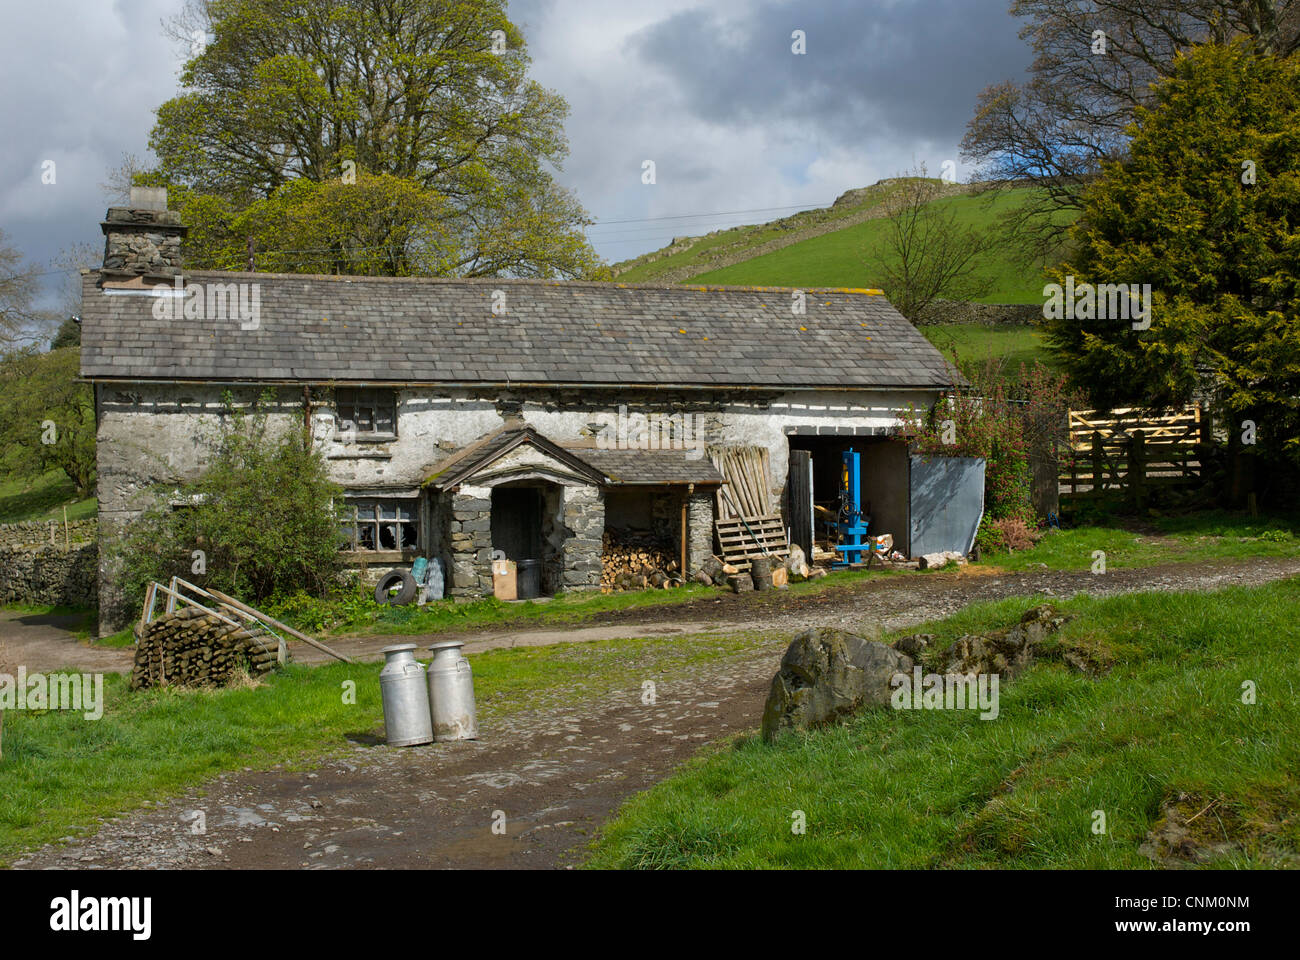 Far Orrest Farm, near Windermere, Lake District National Park, Cumbria England UK - Stock Image